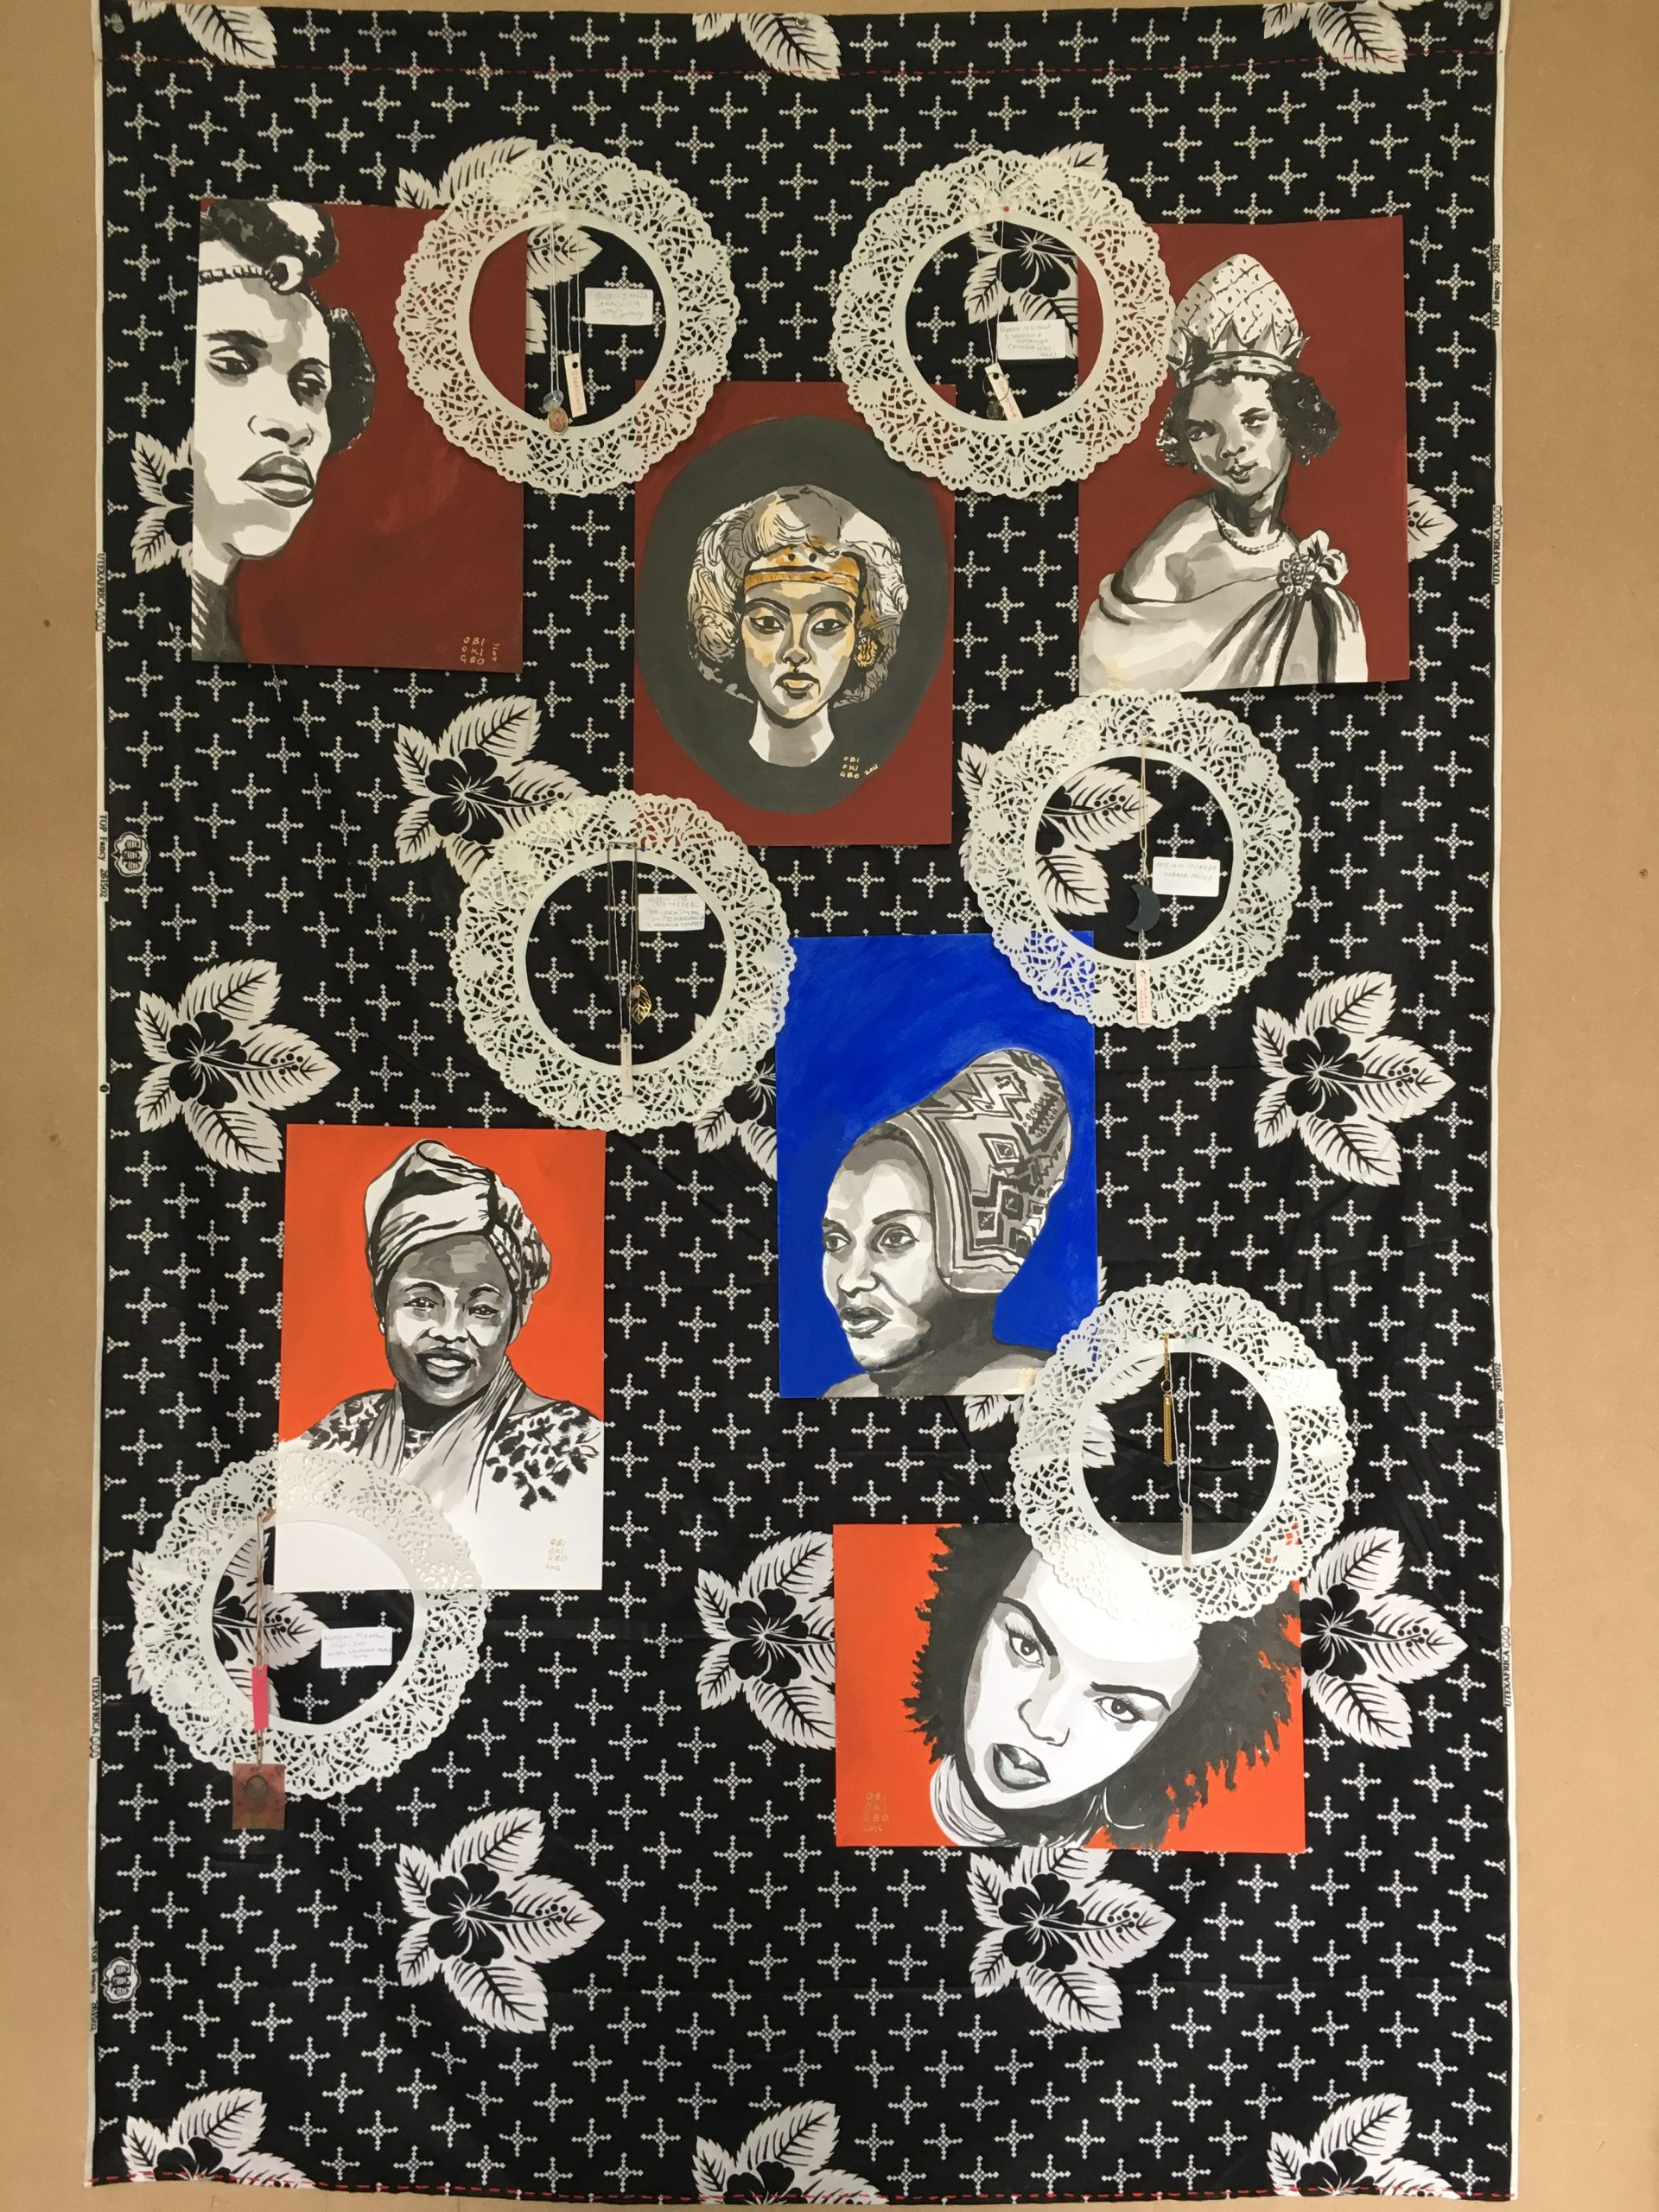 Obi Okigbo, MYSTIC LAMB Panel #4. SHEROES (Installation) Ink portraits, paper doilies, personal artefacts on cotton. Courtesy of the artist